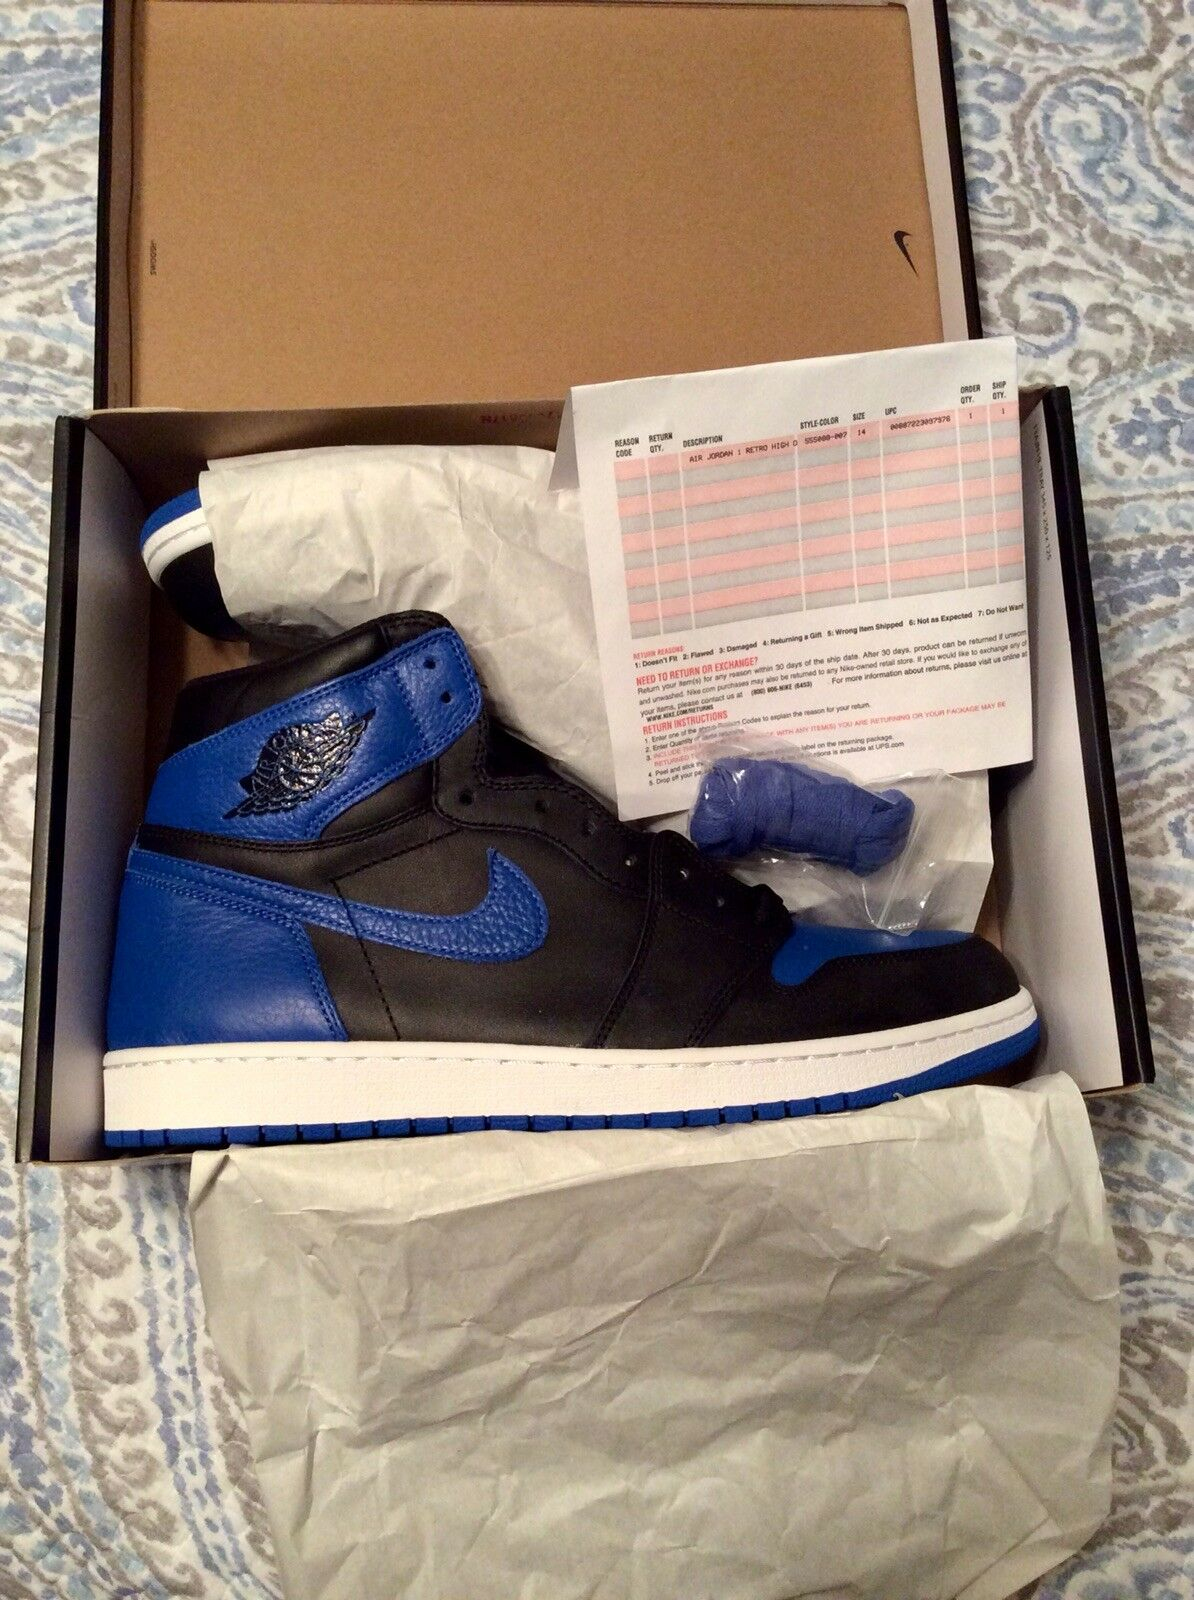 Nike Air Jordan Retro 1 Hi OG Royal bluee DS sz 14 LIMITED SOLD OUT